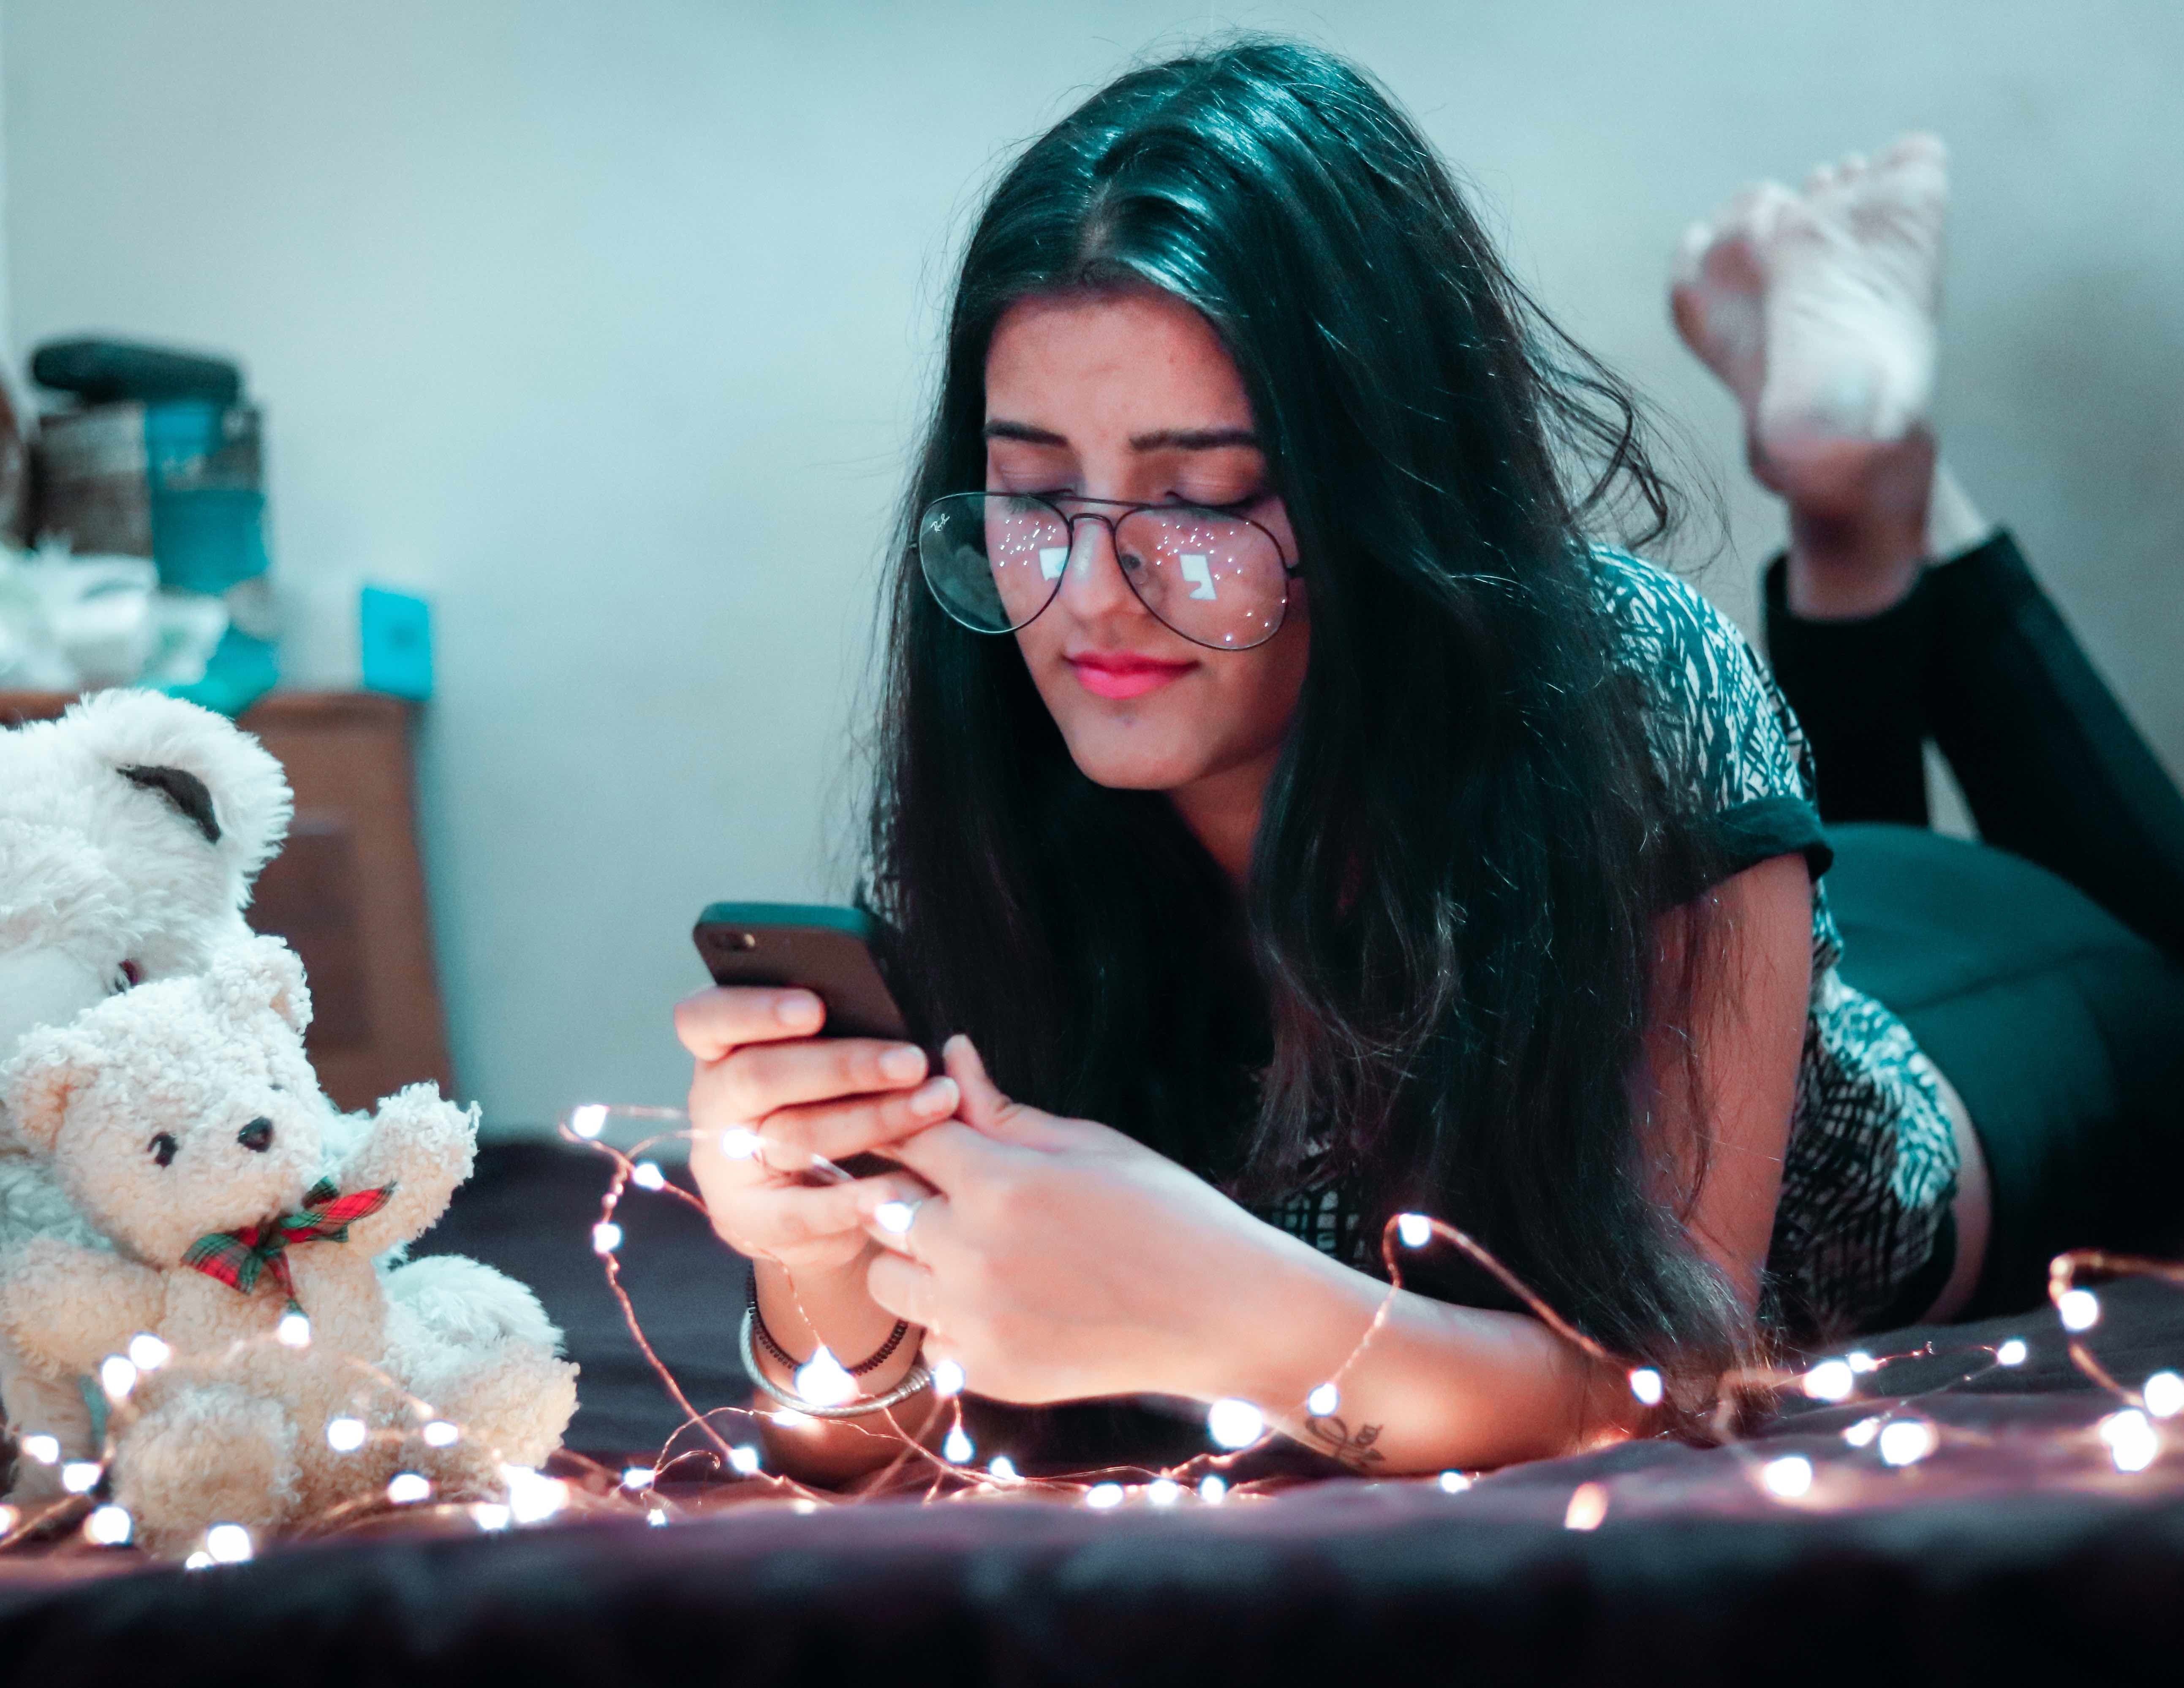 girl texting on bed